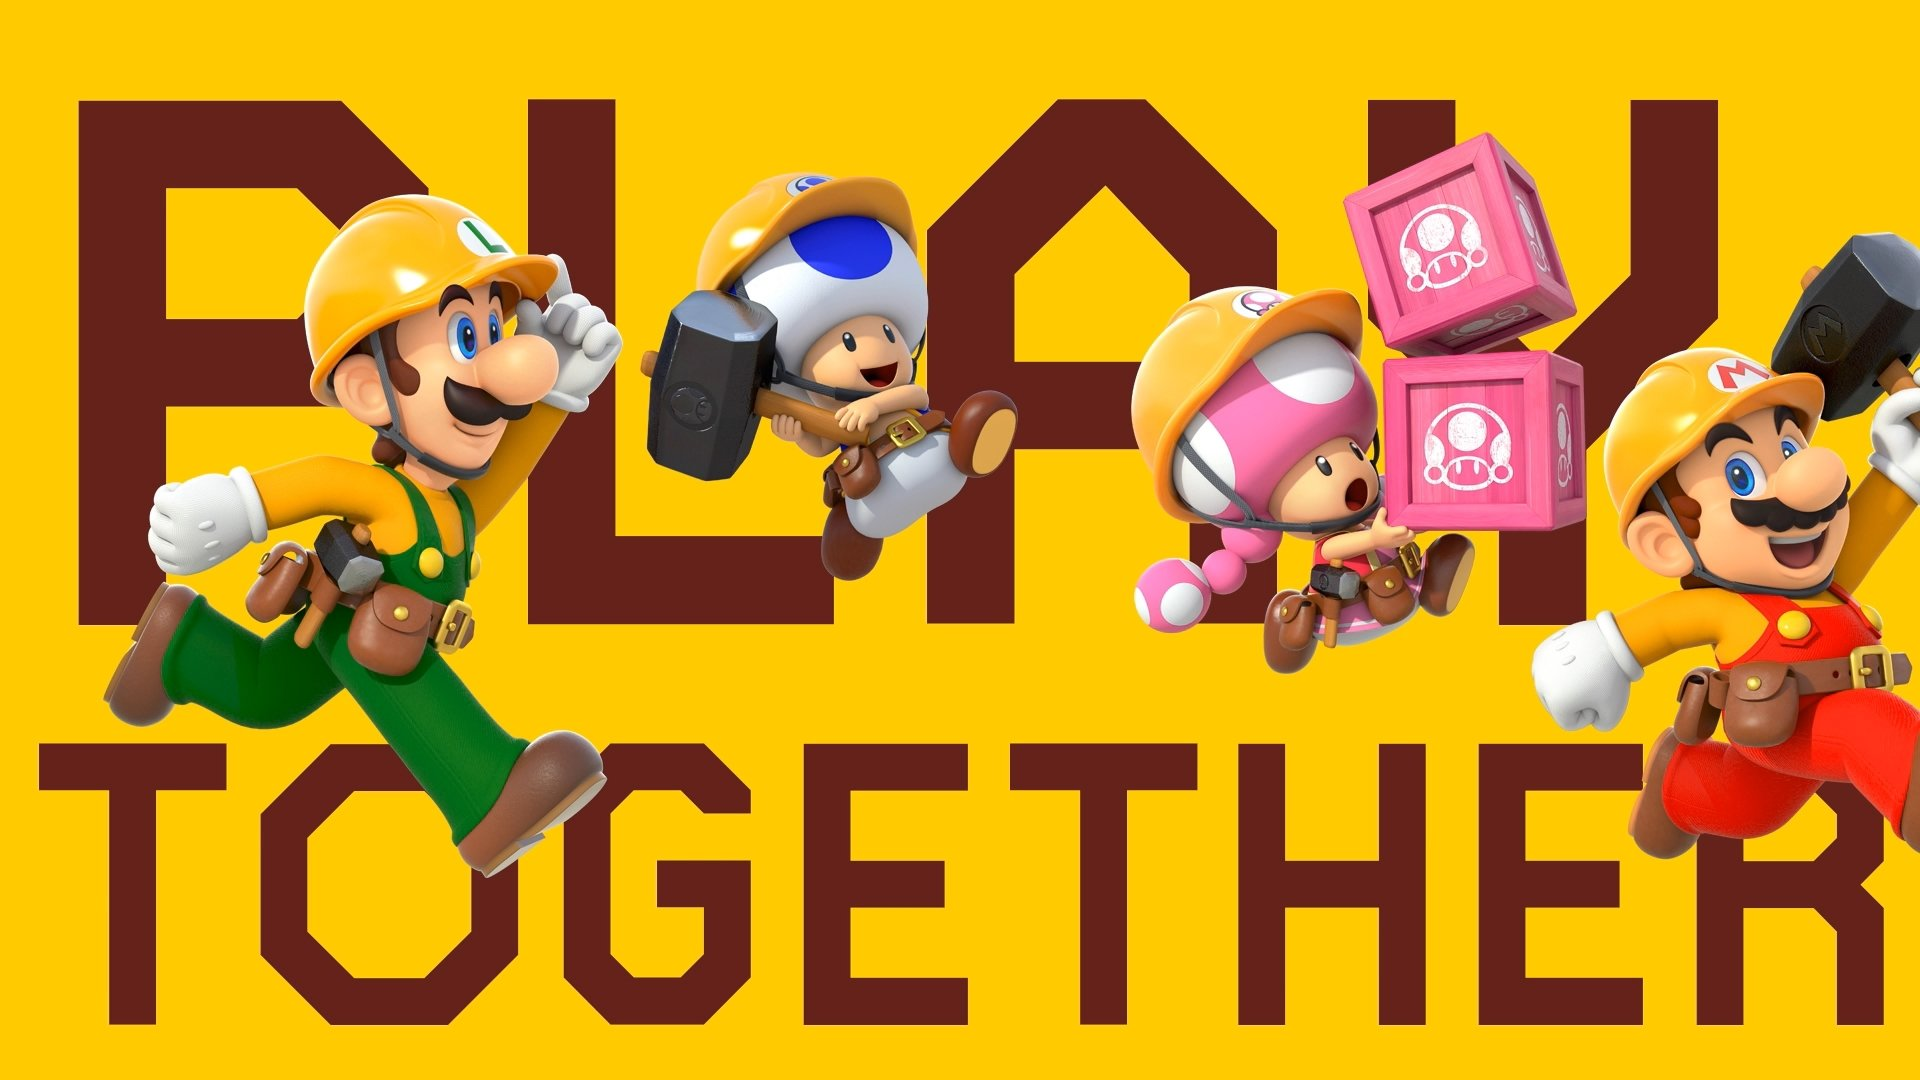 All characters in Super Mario Maker 2